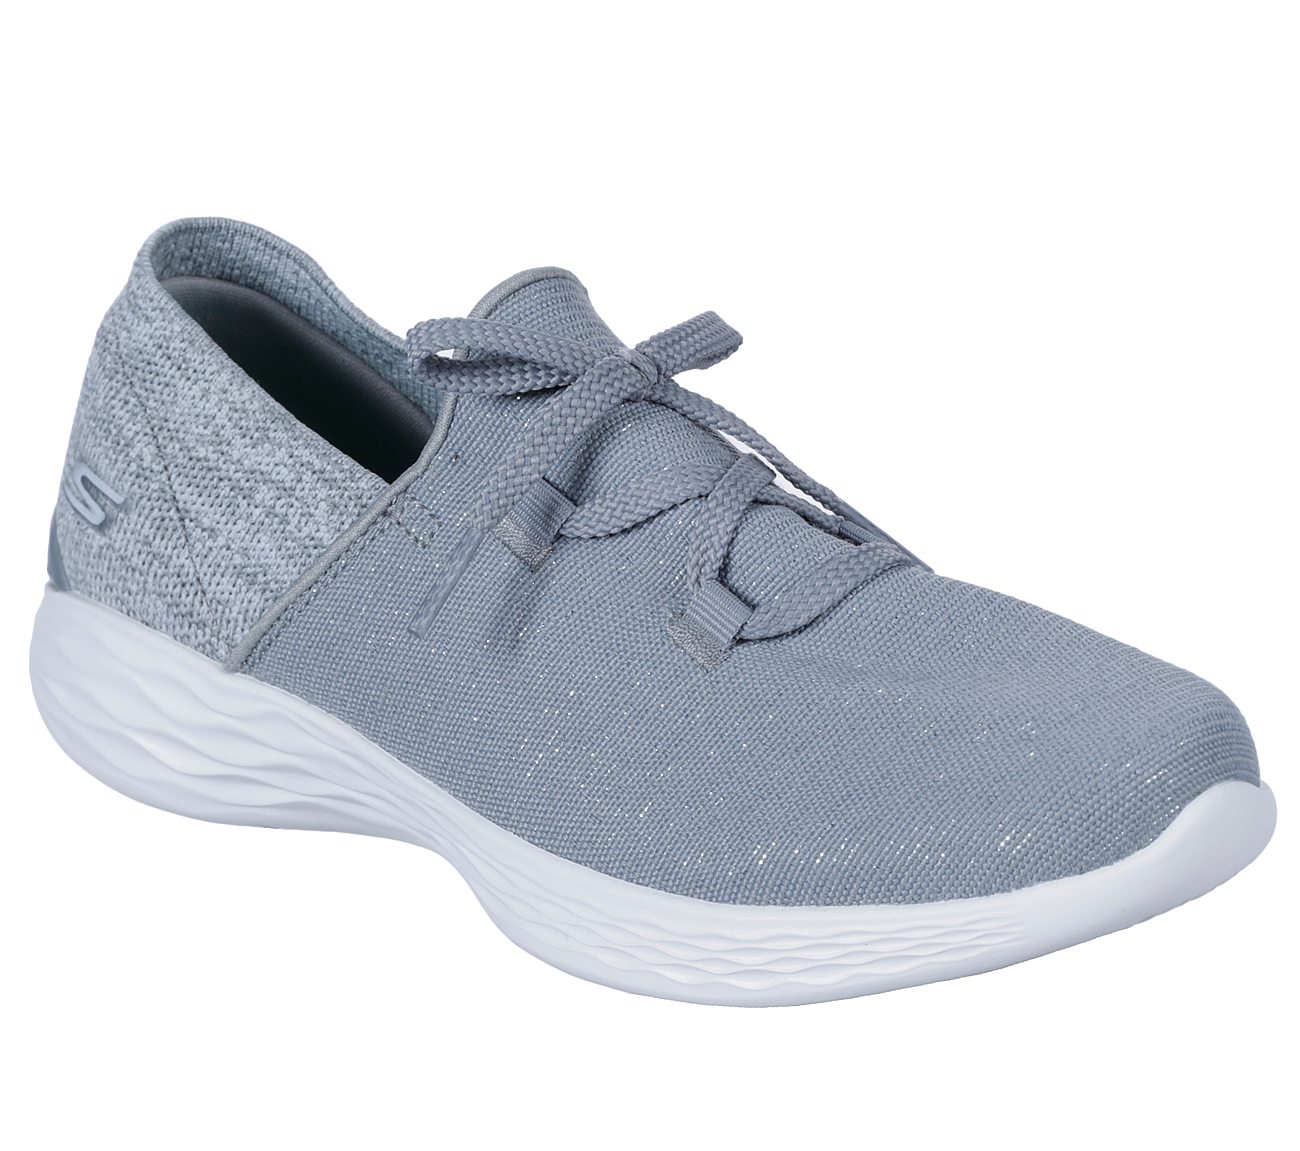 Oh querido exégesis insecto  skechers lifestyle shoes Online Shopping for Women, Men, Kids Fashion &  Lifestyle|Free Delivery & Returns